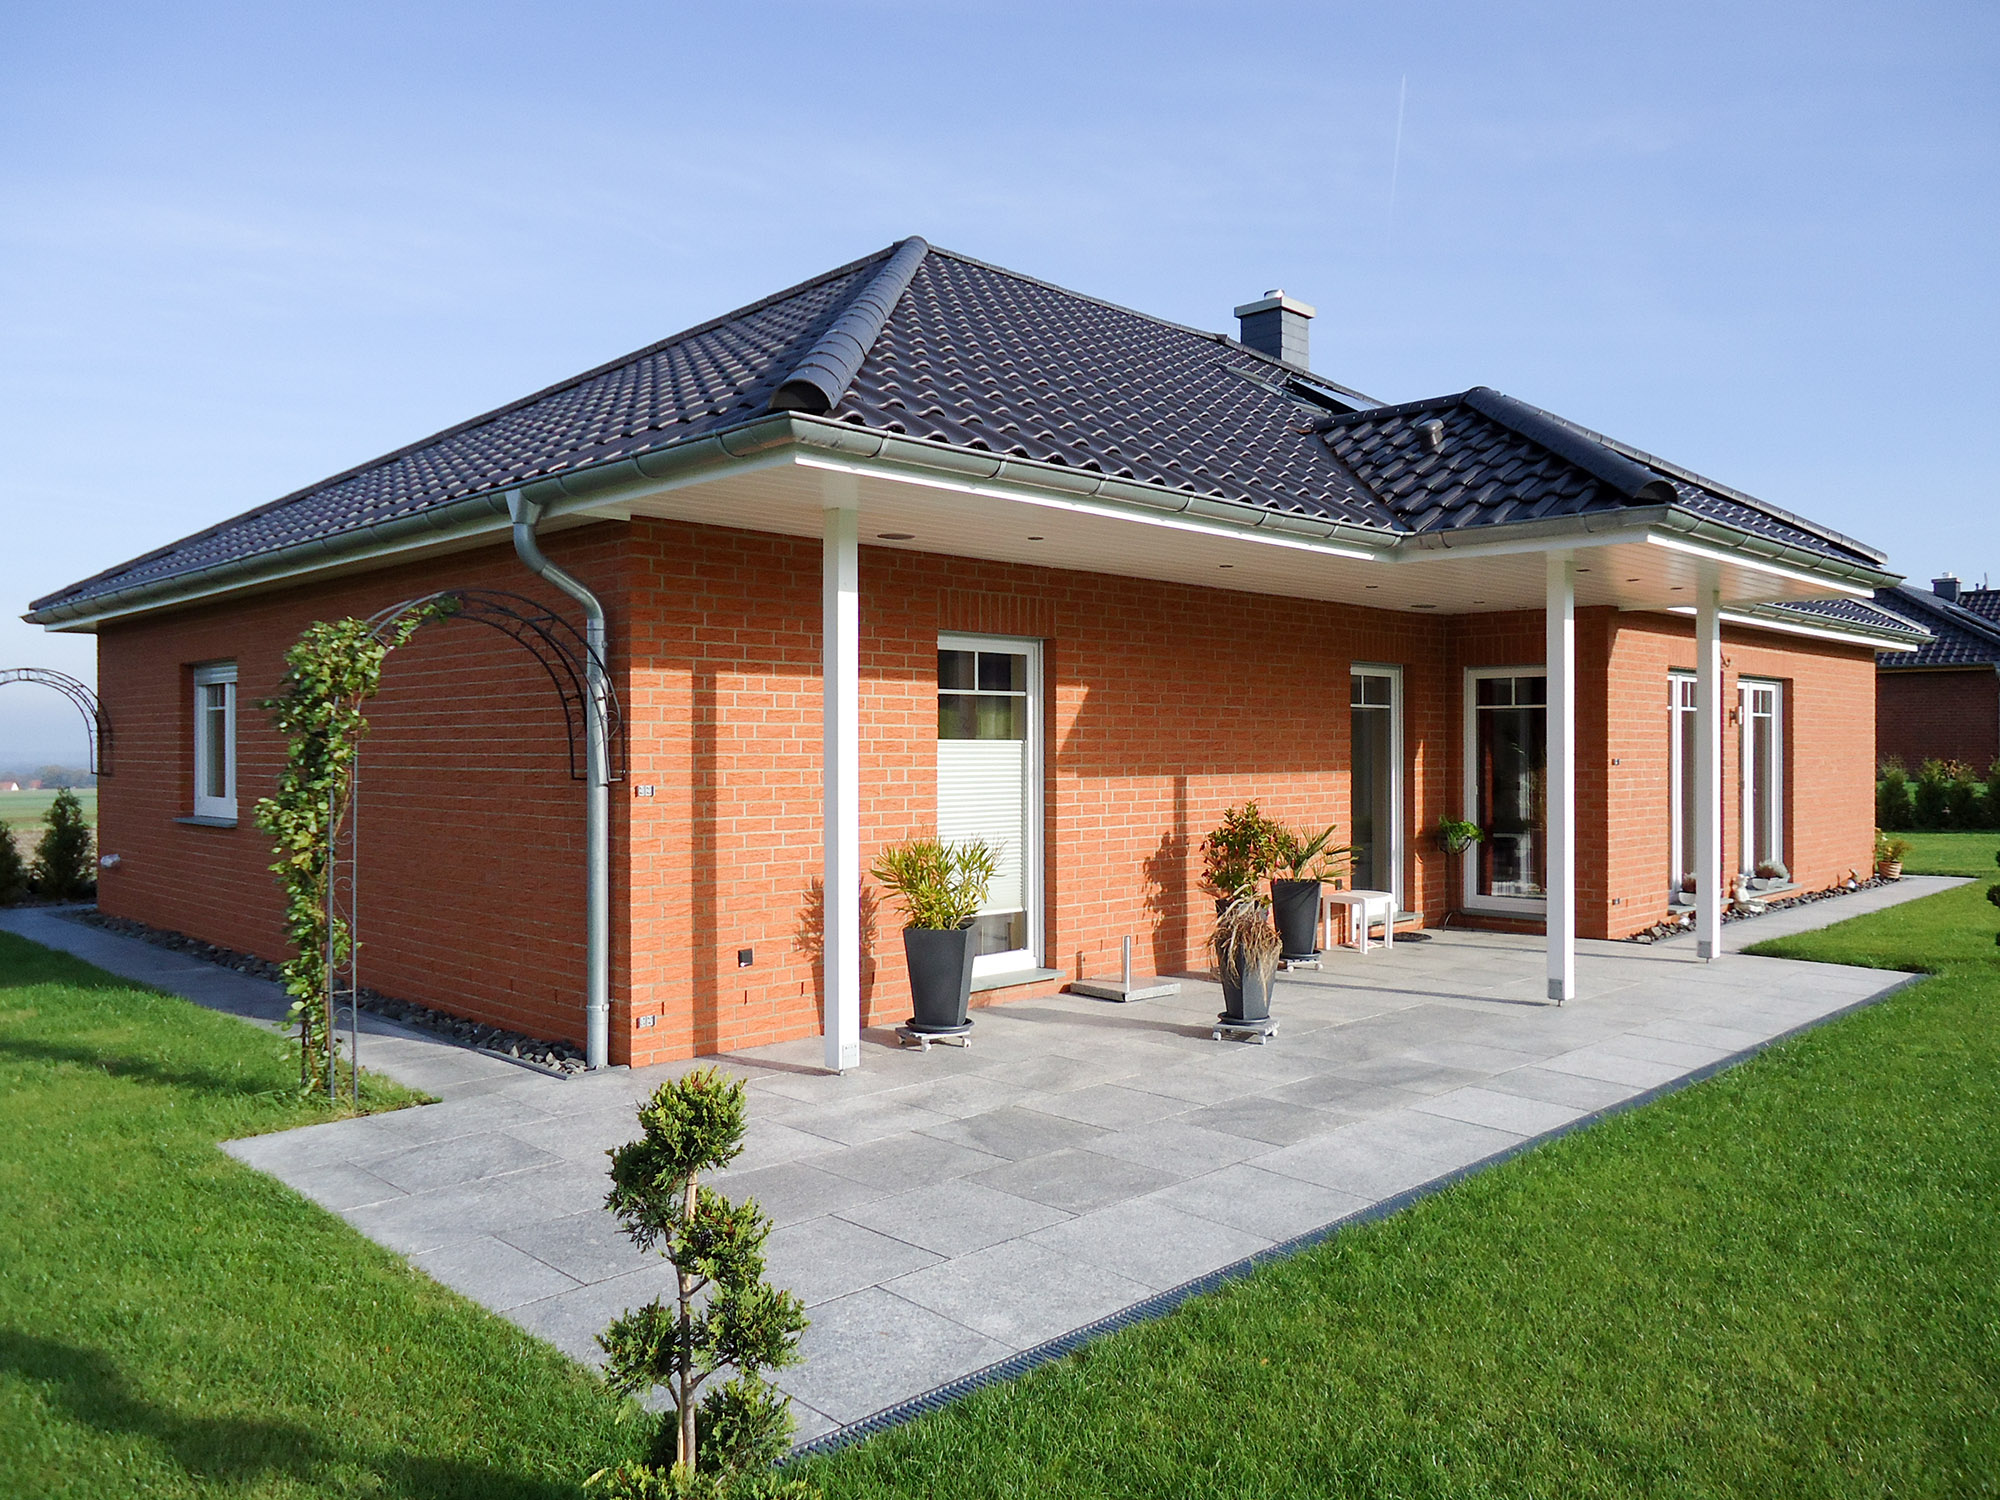 Bungalow in Bergholz mit Terrasse